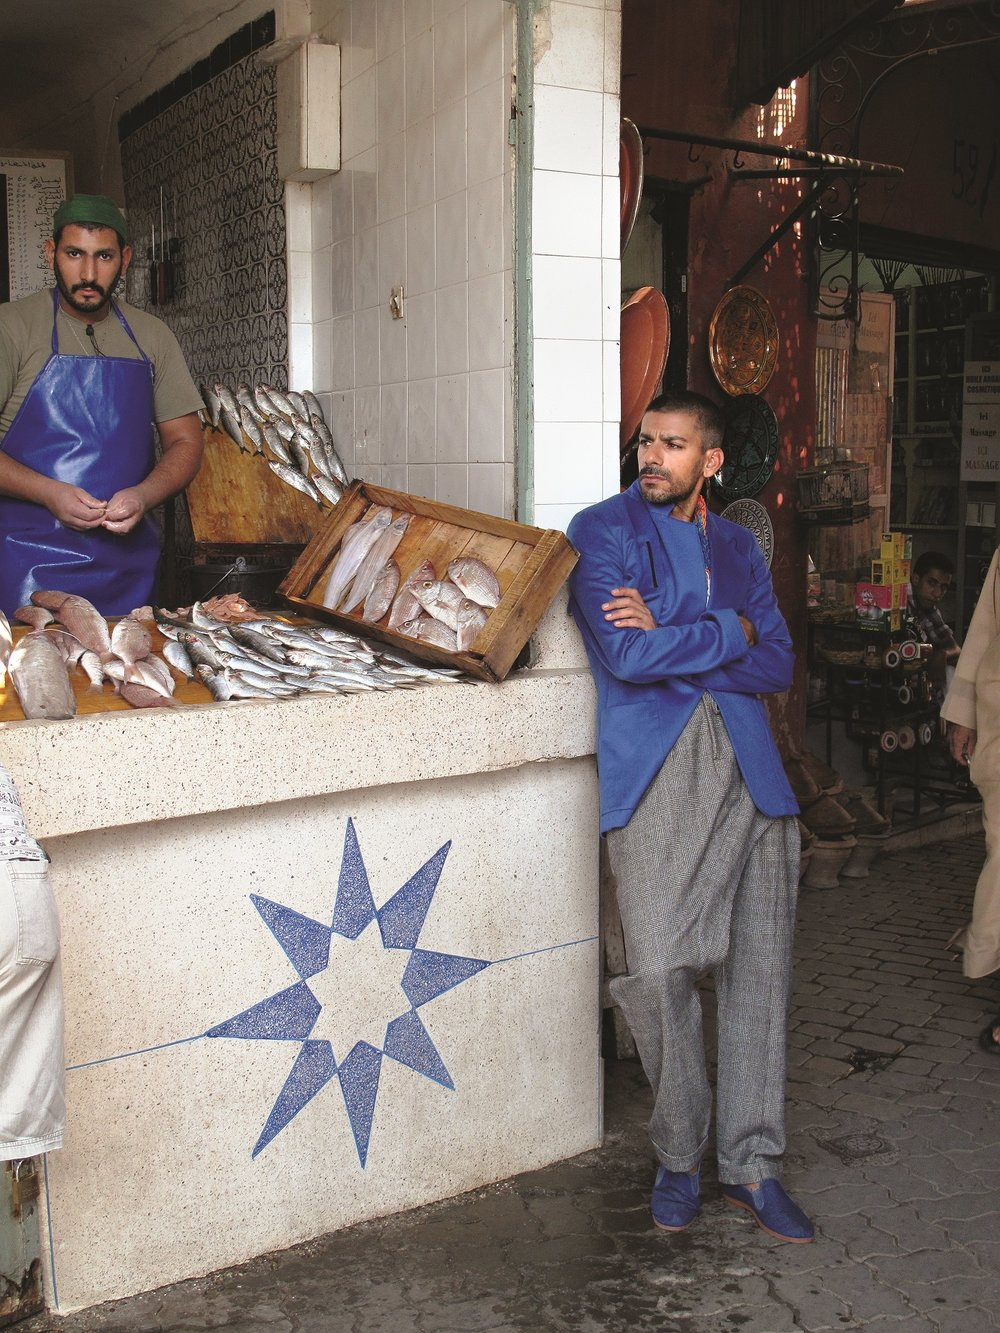 8 globetrotter issue 2 fashion spread morocco abcb culture and bullshit.jpg